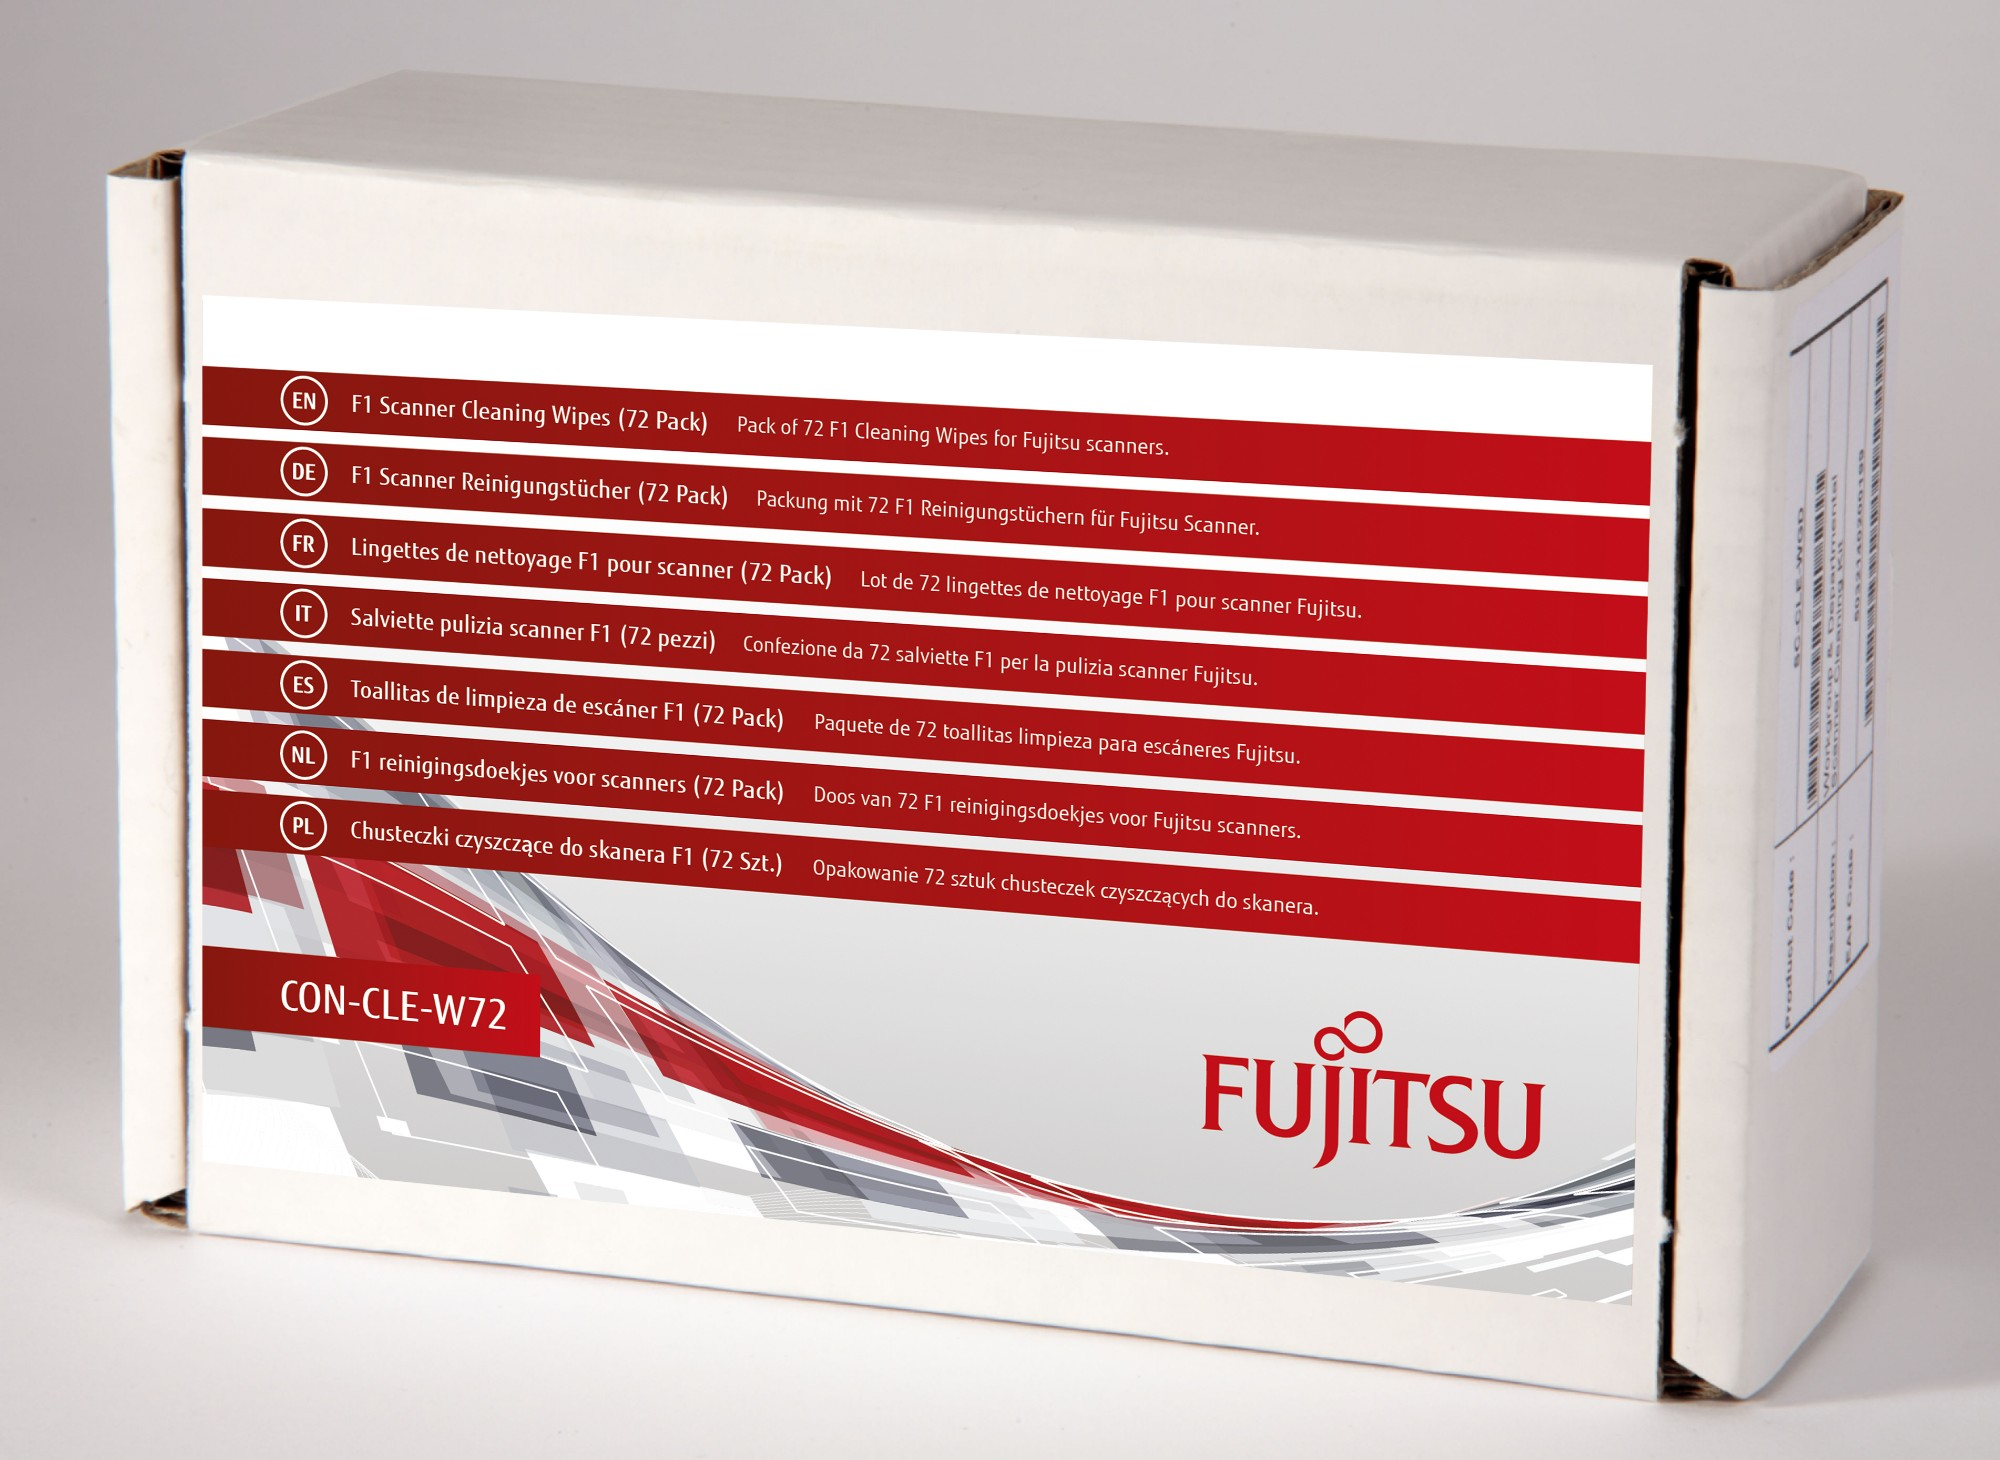 Fujitsu/PFU F1 Scanner Cleaning Wipes (72 Pack) Scanner Cleaning wipes Impregnated with manufacturer